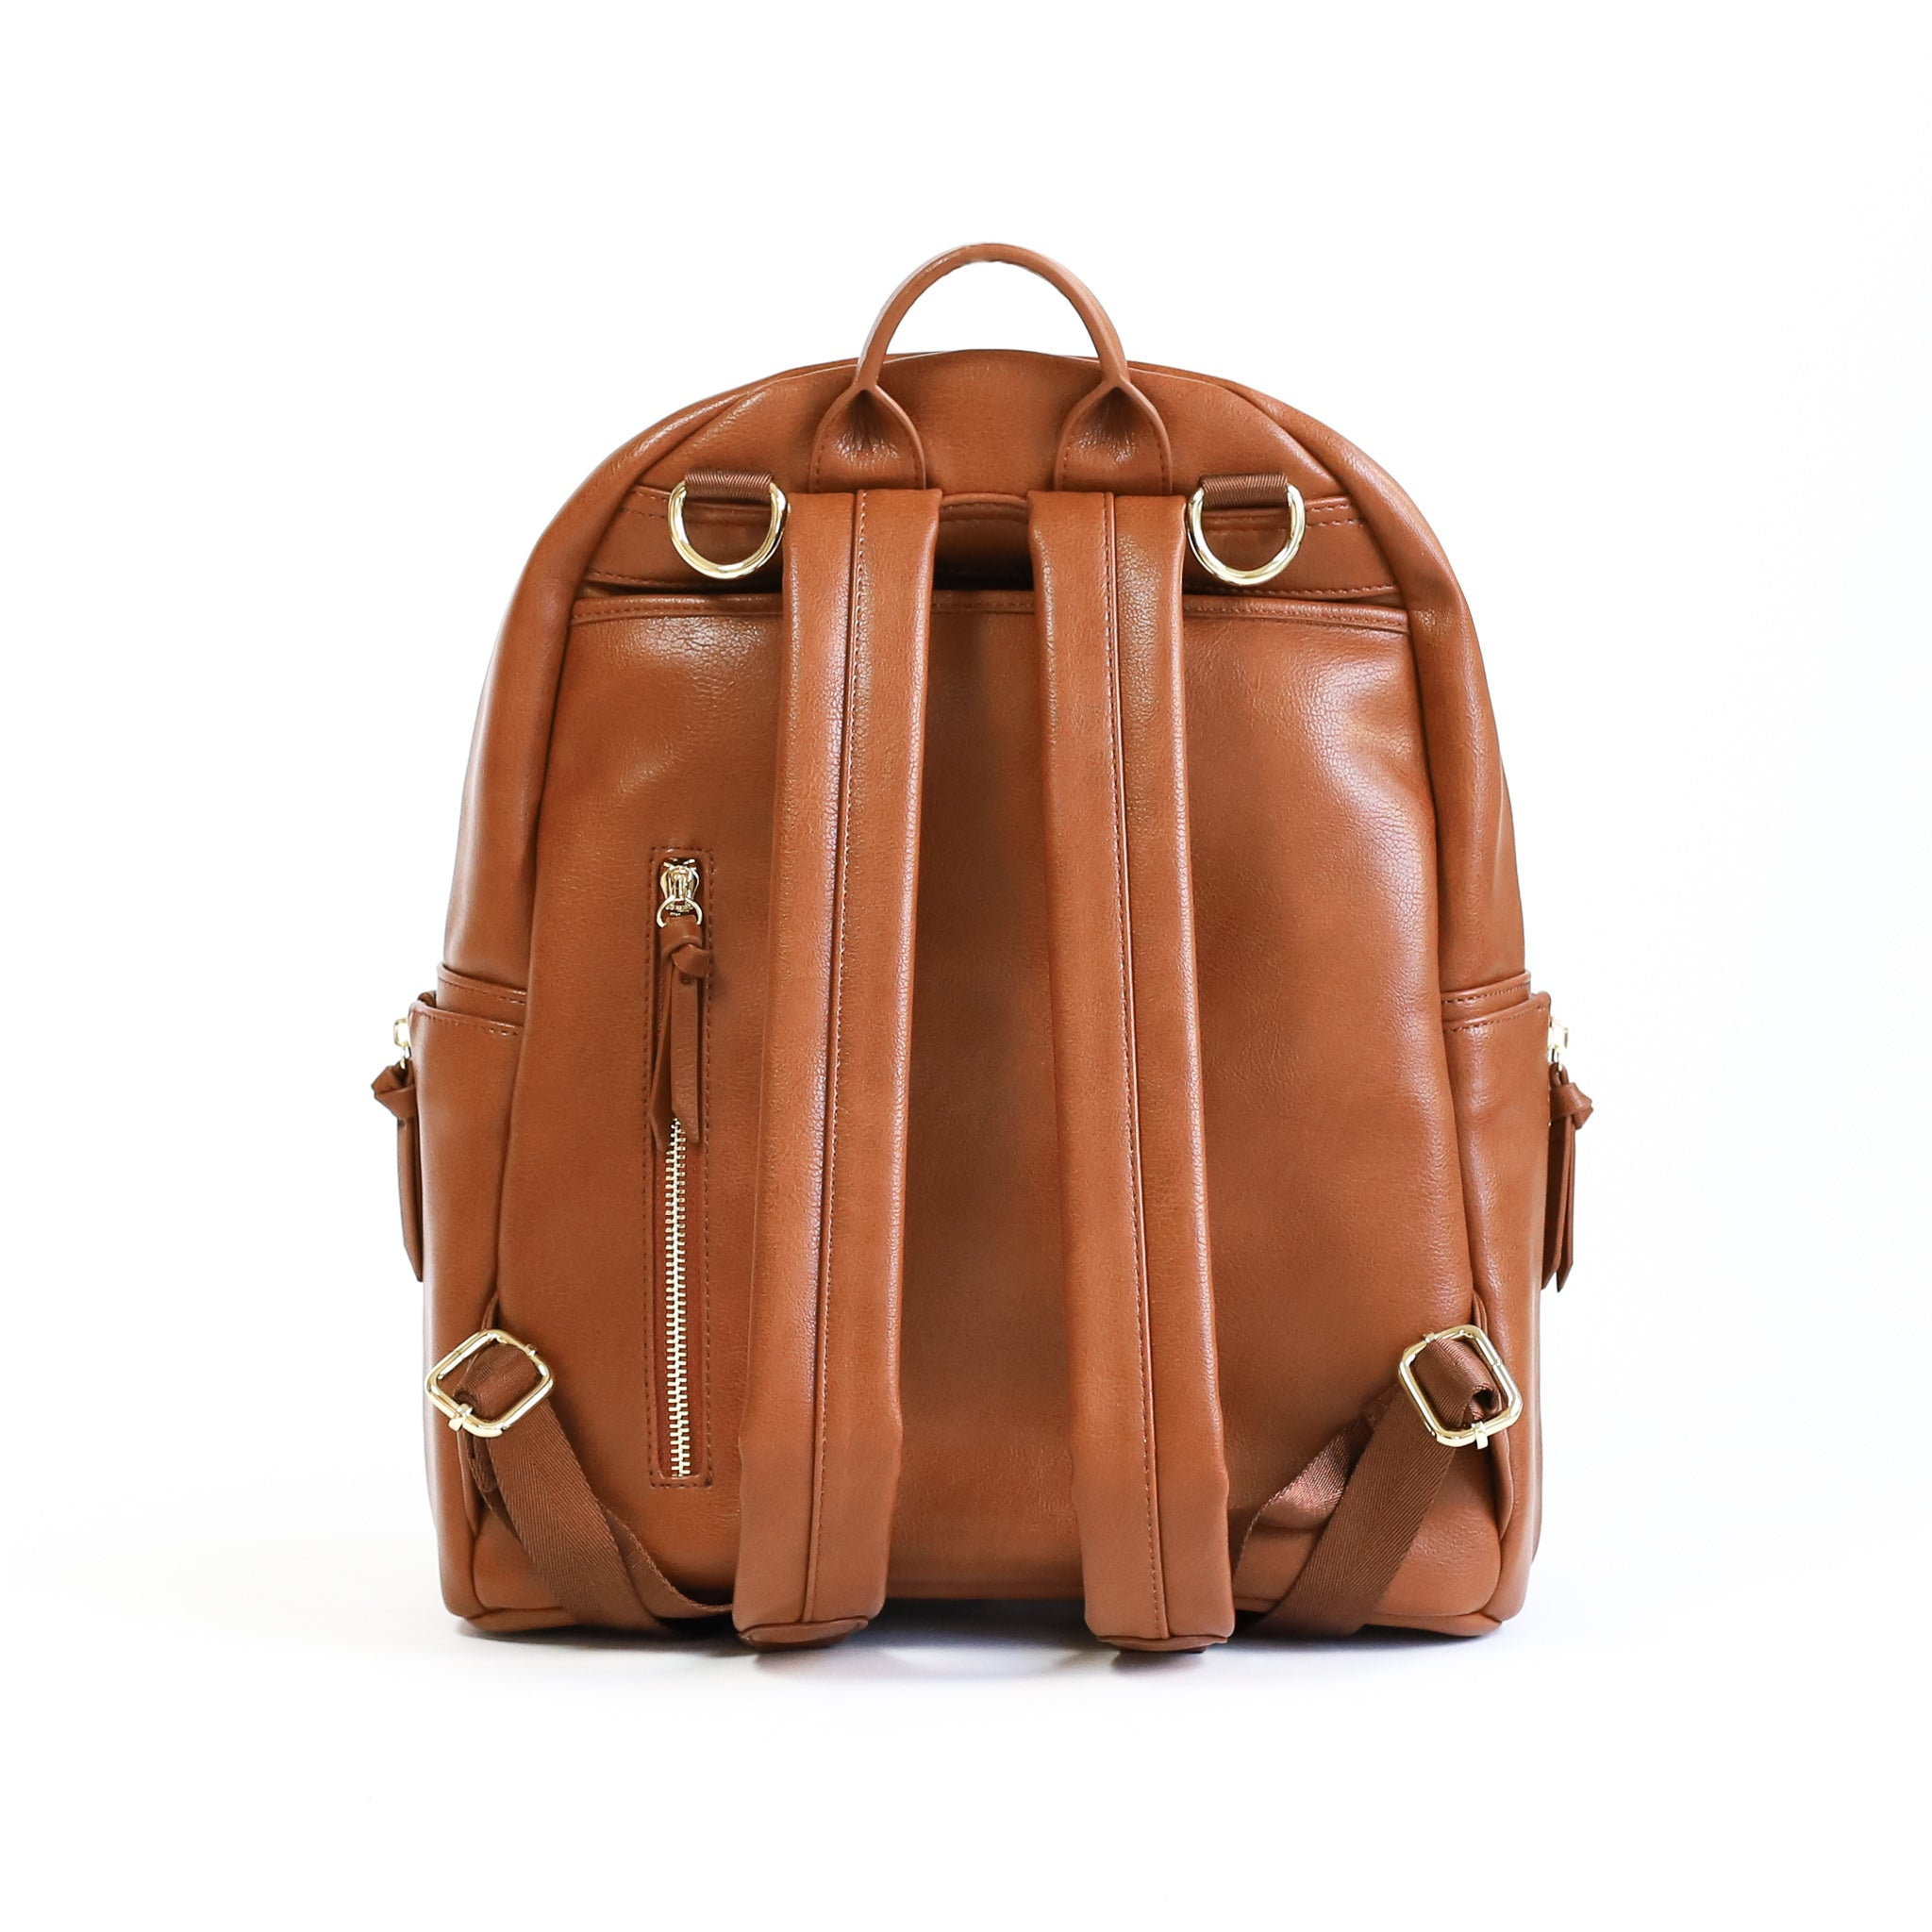 SADDLE ALL DAY BACKPACK